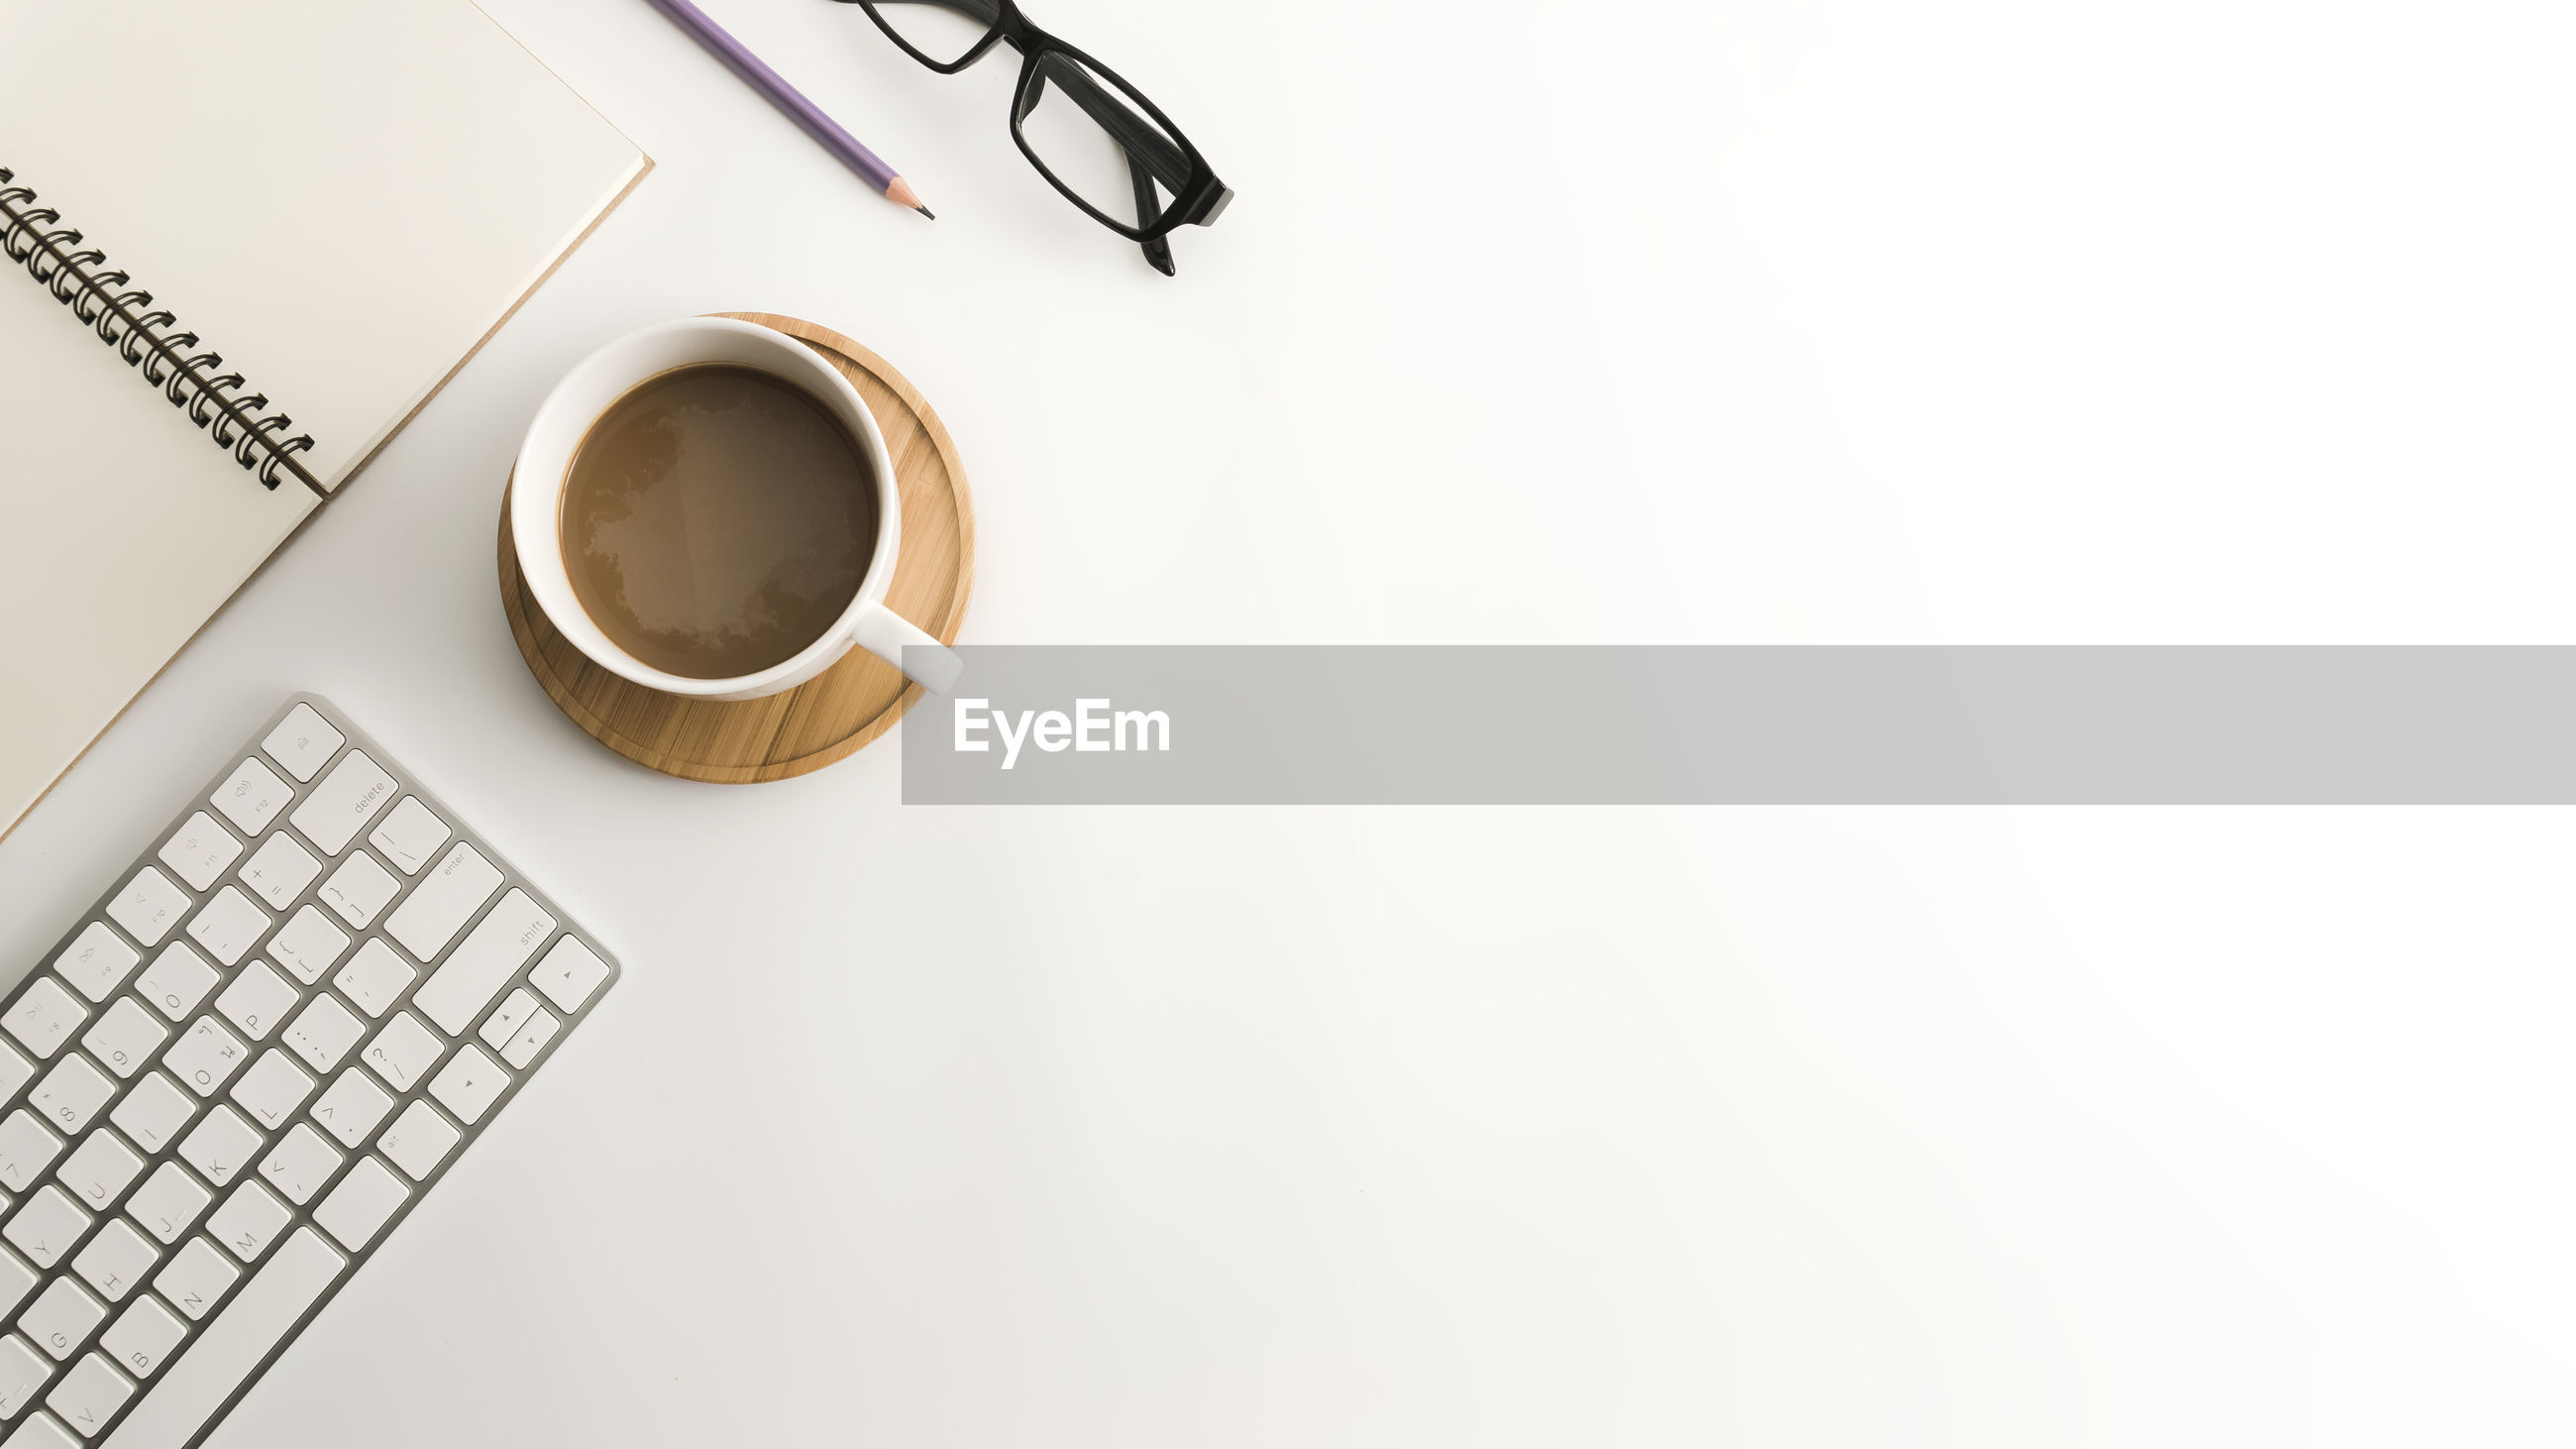 High angle view of coffee and keyboard on white background